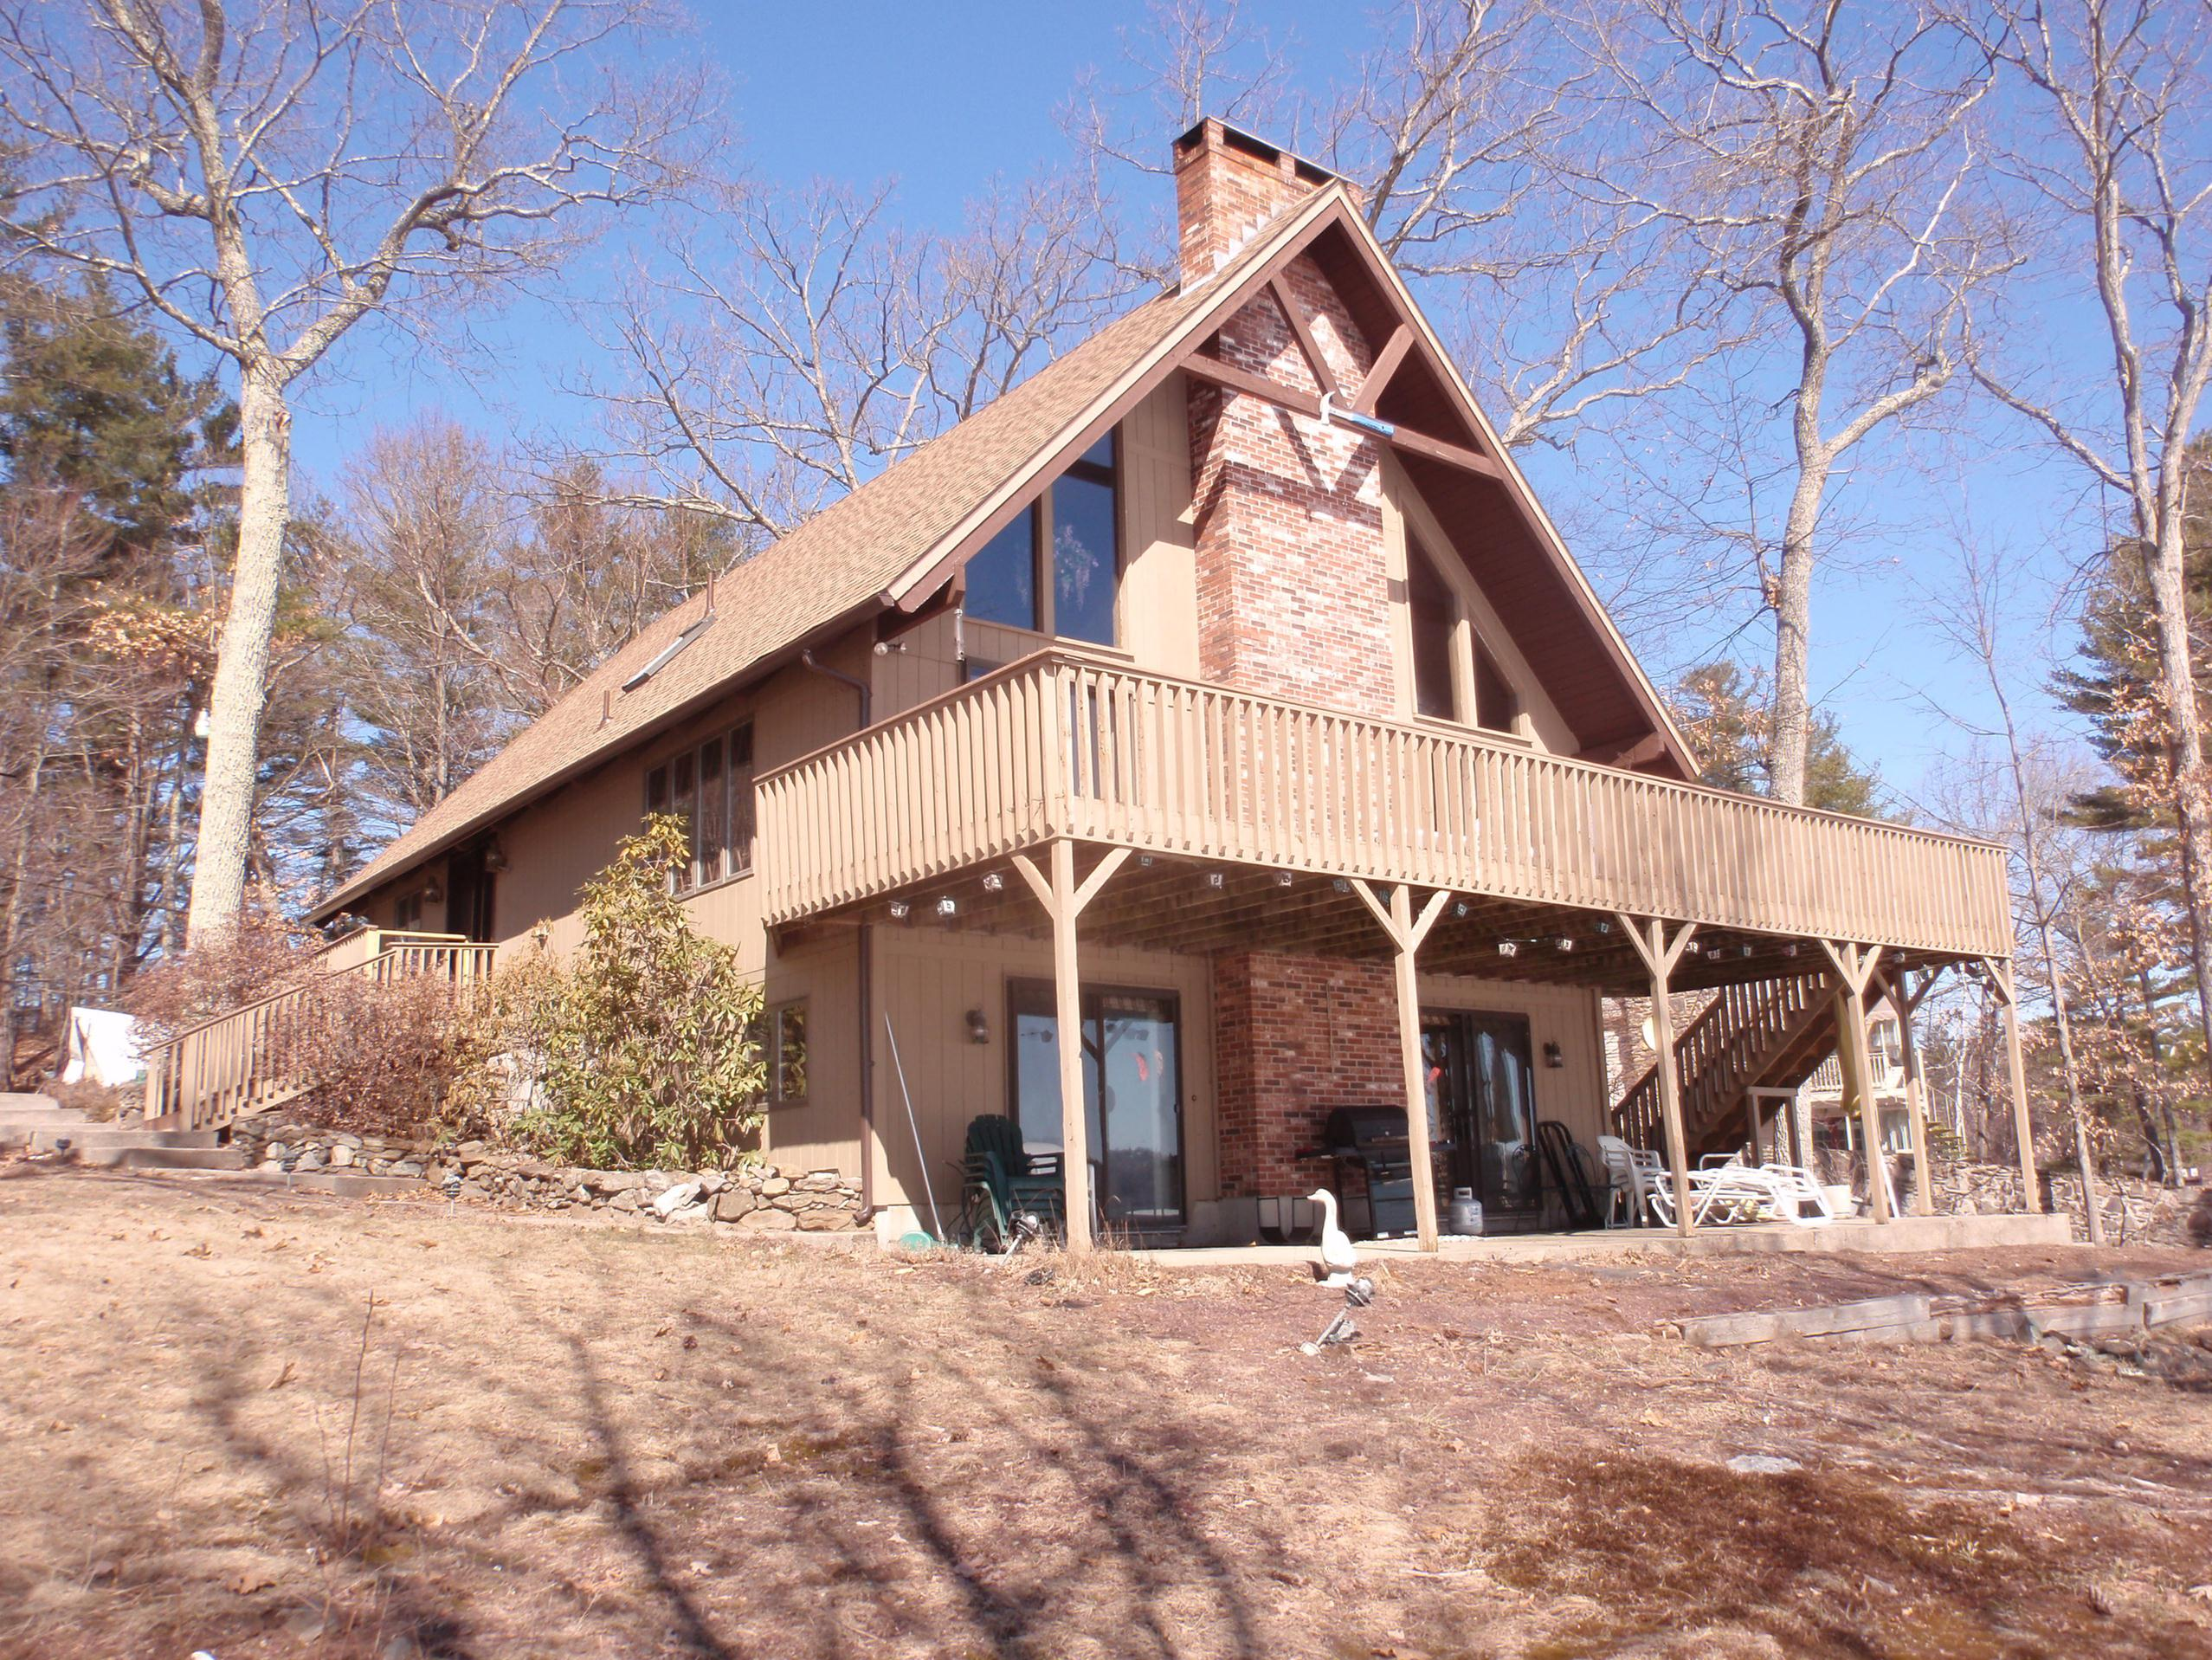 cabins remodel log sale about ideas nh excellent small home for with in